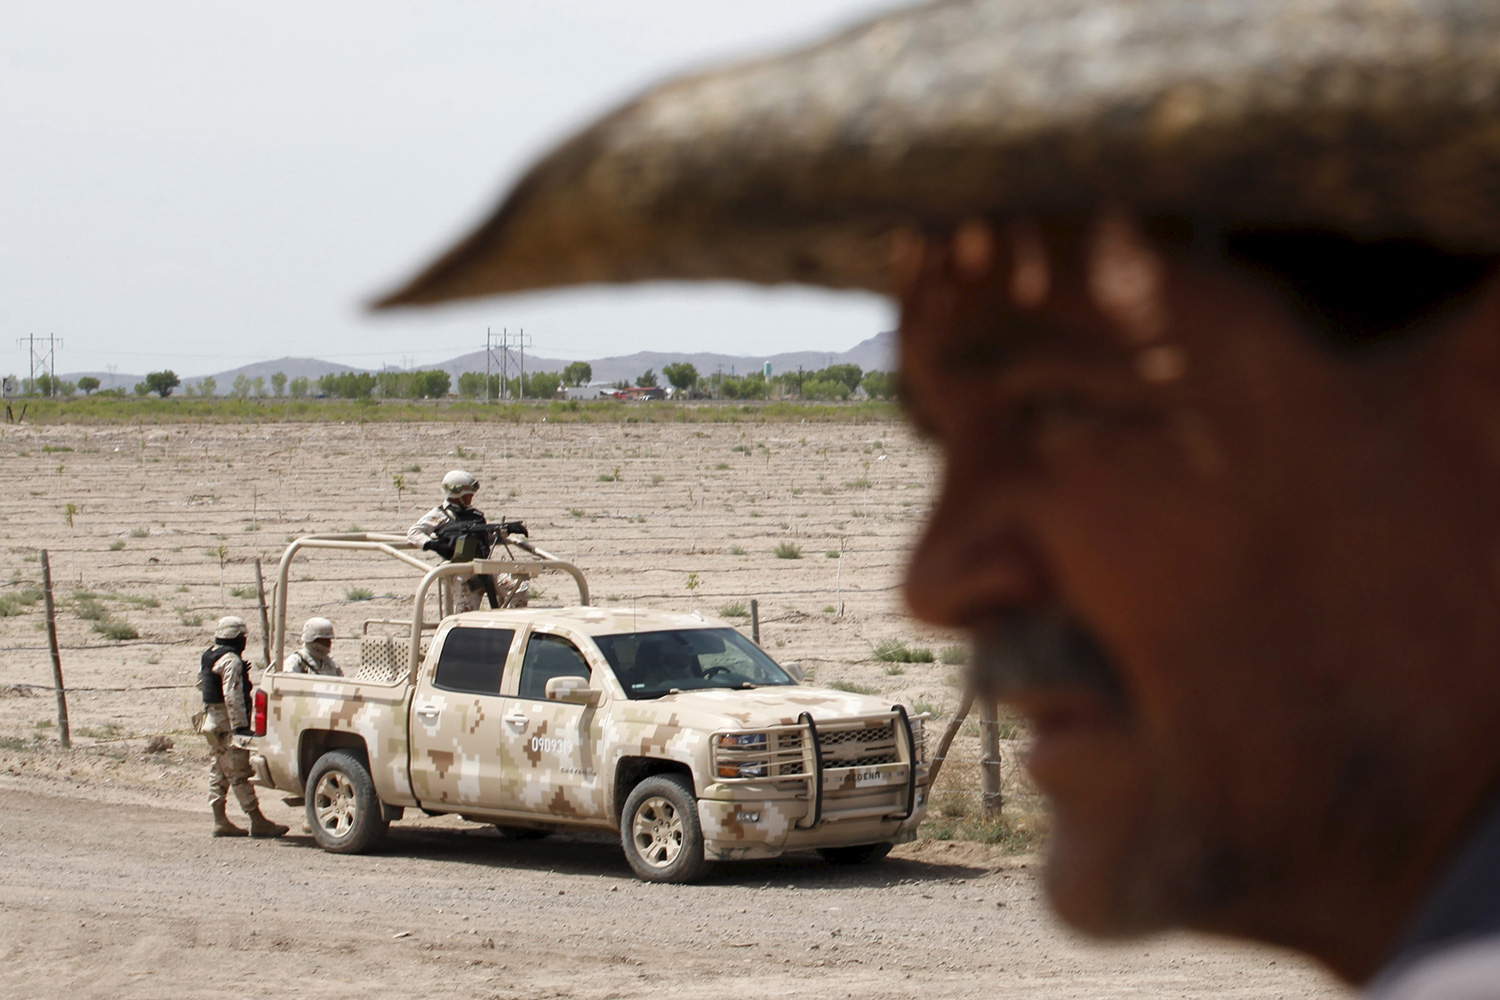 The photo shows a dusty dirt road with a truck of soldiers on it while a man stands out of focus in the foreground.